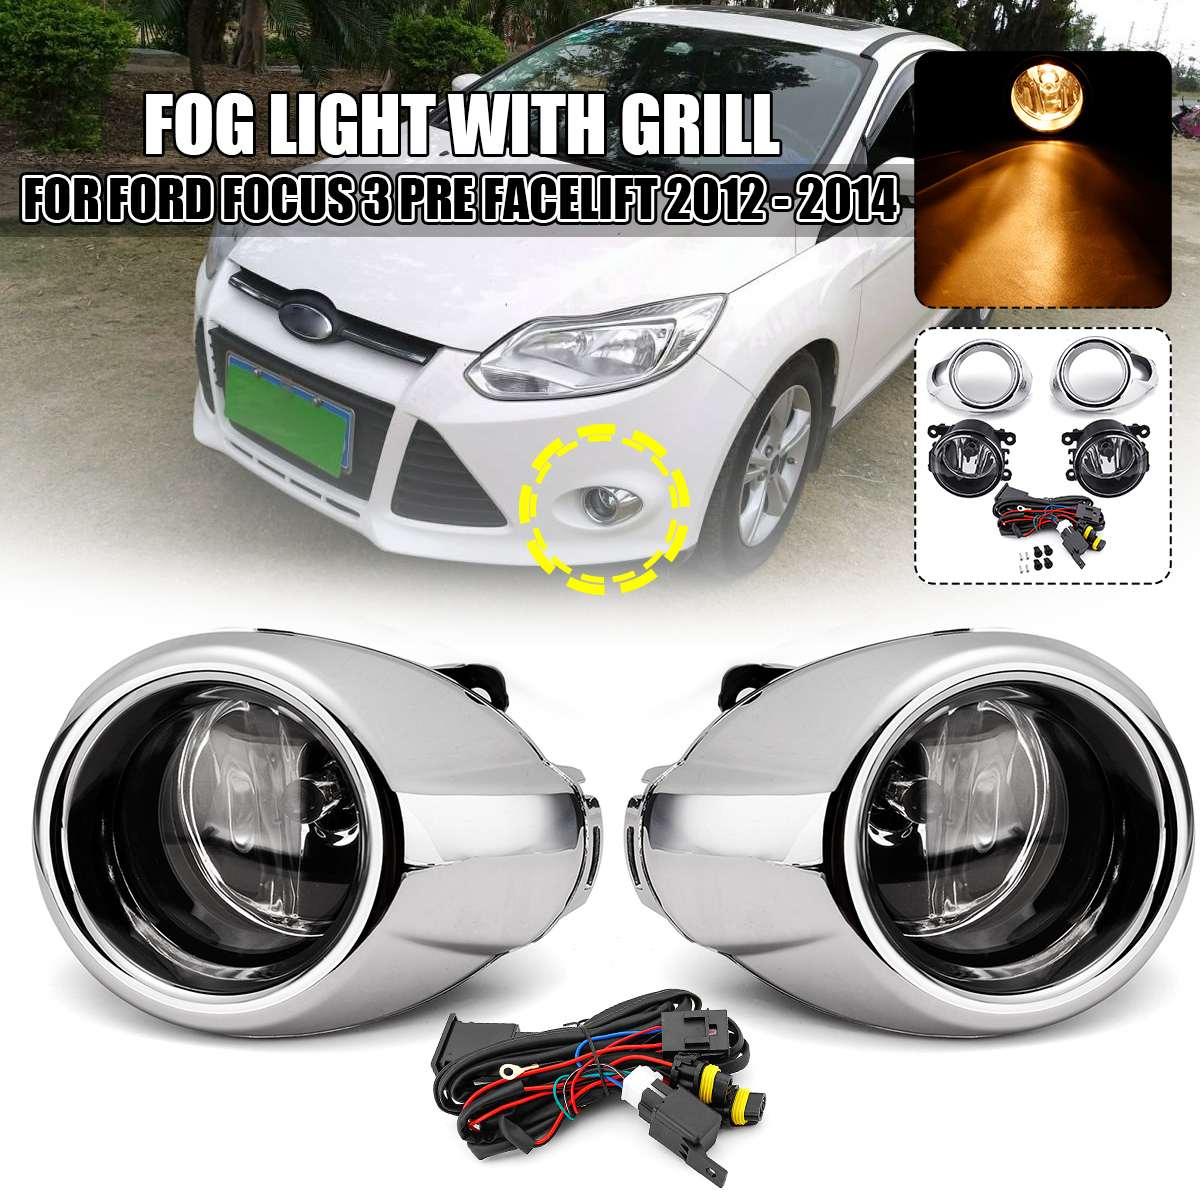 Car Fog Light With Cover For Ford Focus 3 2012 2013 2014 Pre-facelift Fog Light With Chromed Grill With Bulb Wire Switch Styling